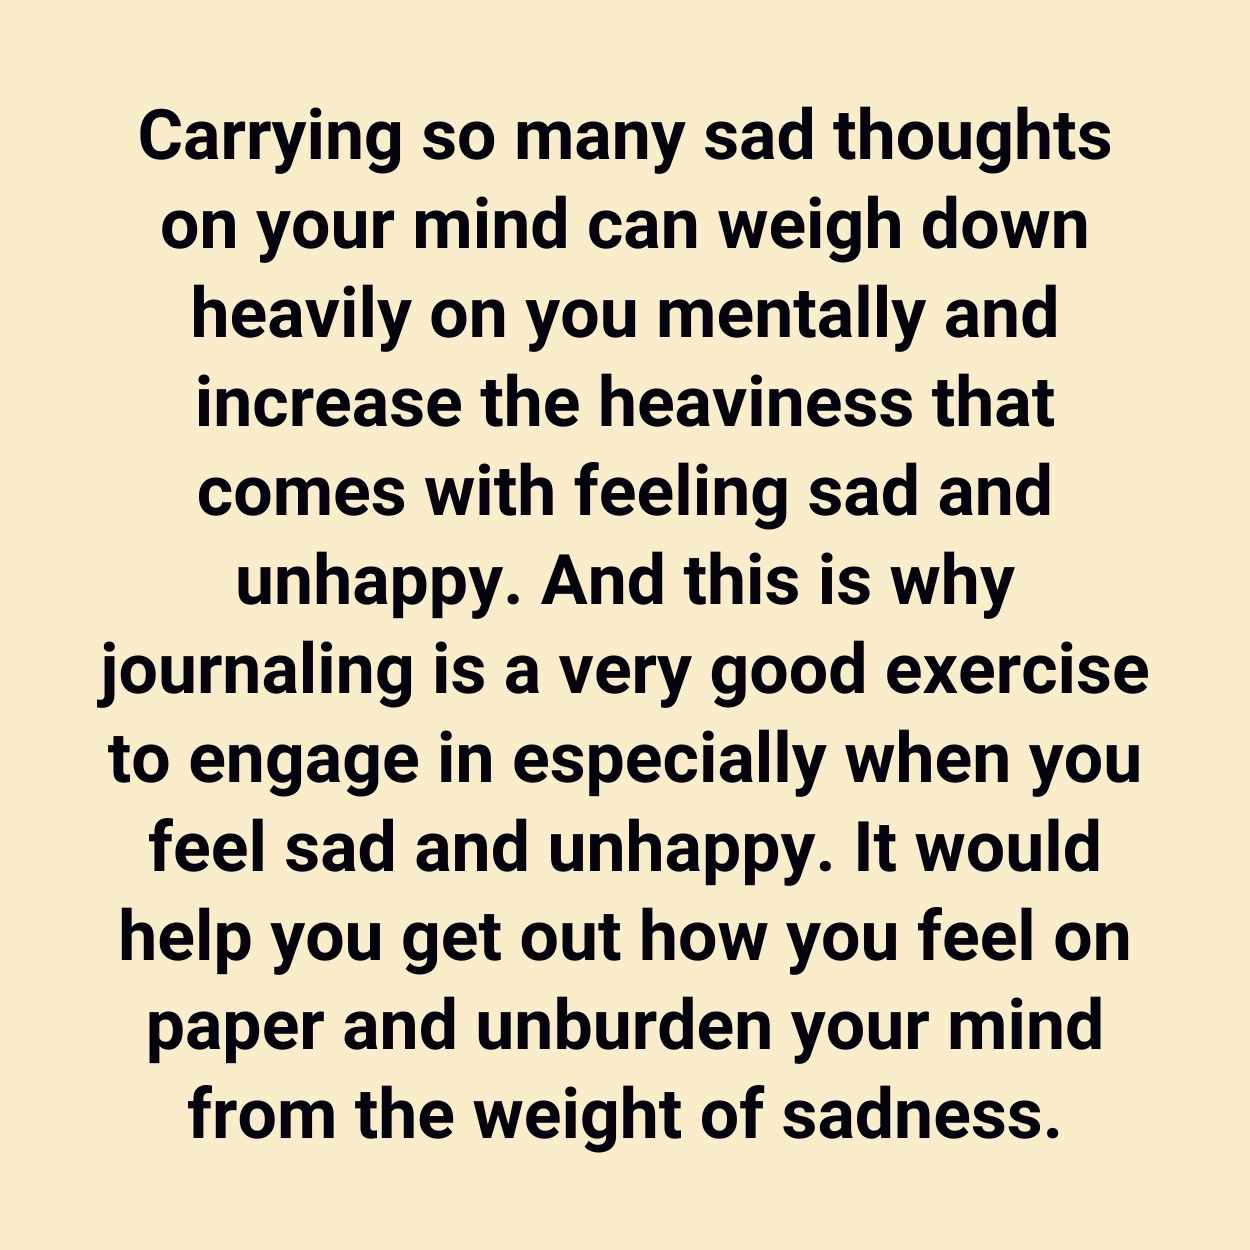 Carrying so many sad thoughts on your mind can weigh down heavily on you mentally and increase the heaviness that comes with feeling sad and unhappy. And this is why journaling is a very good exercise to engage in especially when you feel sad and unhappy. It would help you get out how you feel on paper and unburden your mind from the weight of sadness.